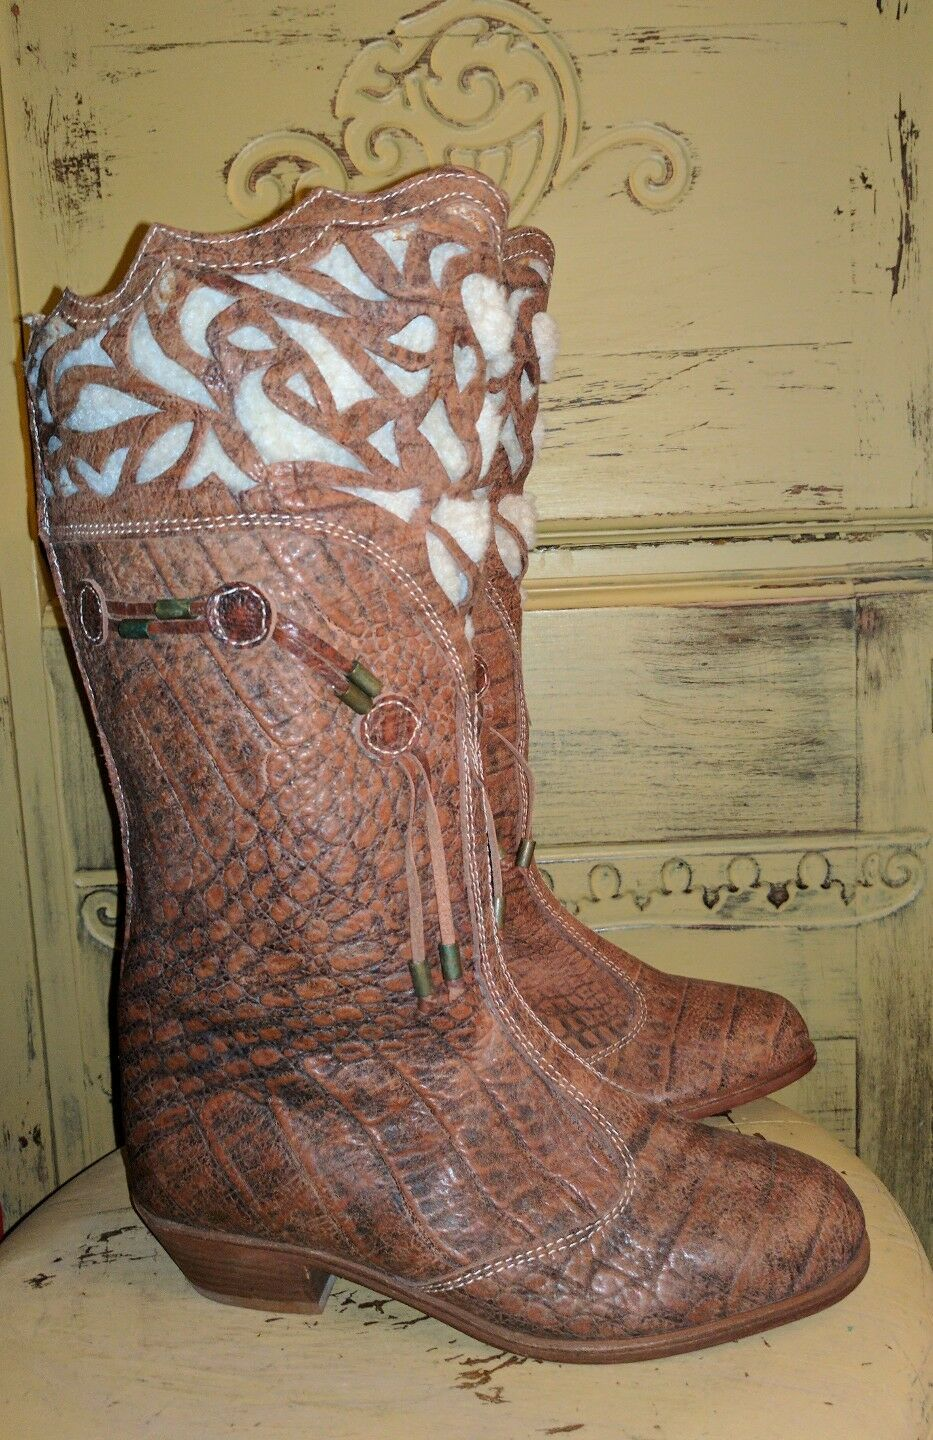 VINTAGE CORTI BOUTIQUE ITALY CROC EMBOSSED LEATHER RIDING BOOTS BROWN 38 7 M